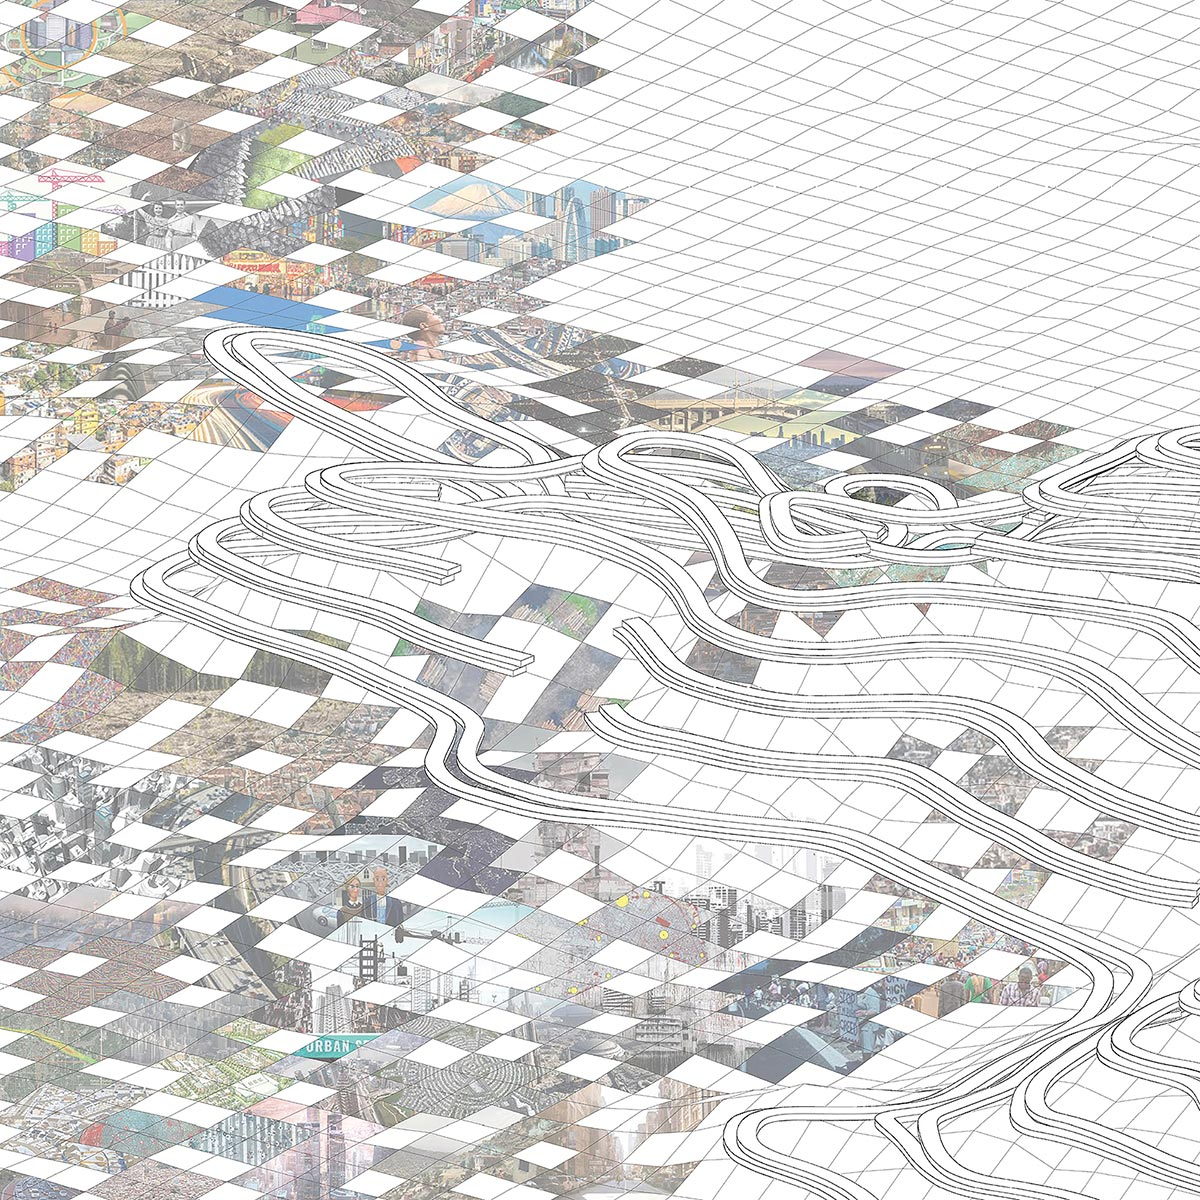 Conceptual collage illustrating a landscape being devoured by sprawl with housing contours above by student Stephen Adrian